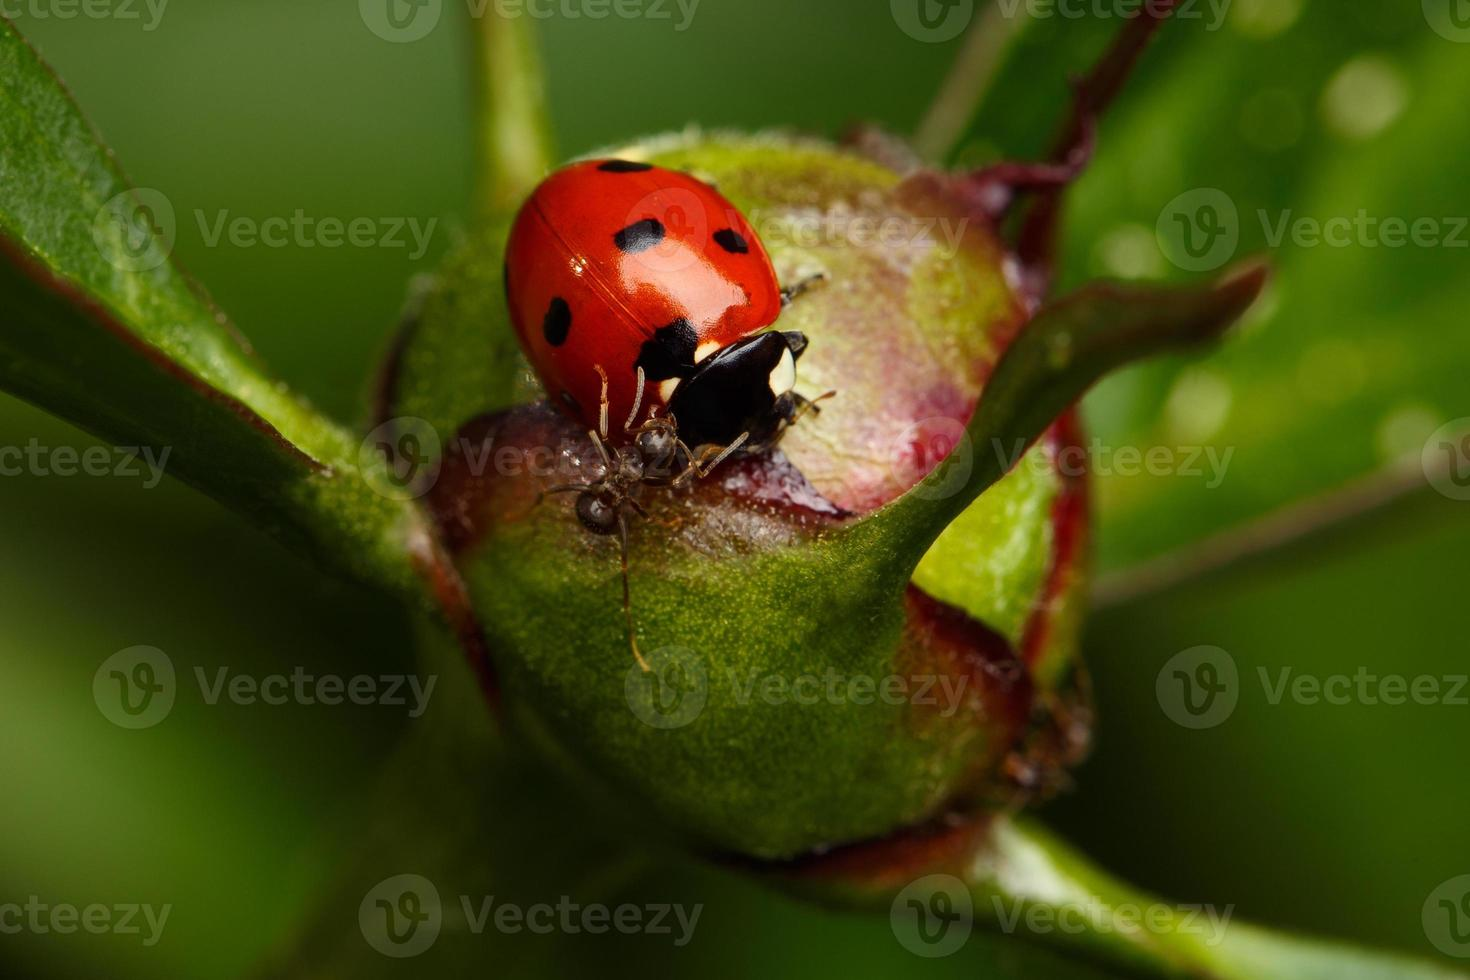 coccinelle attaque de fourmis sur bouton floral photo